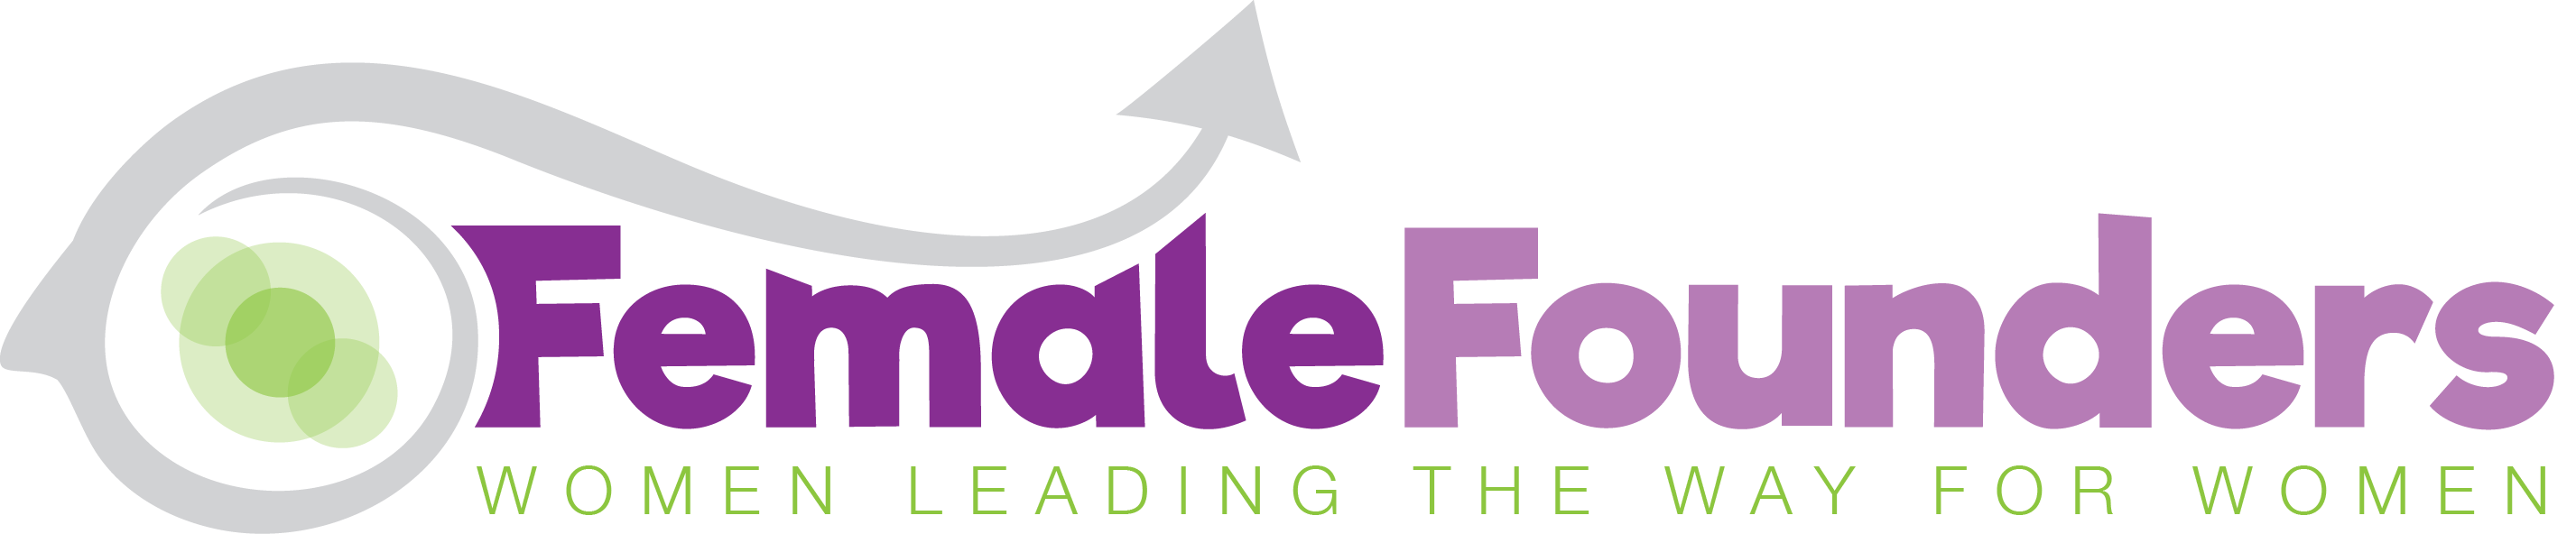 female founders feature story